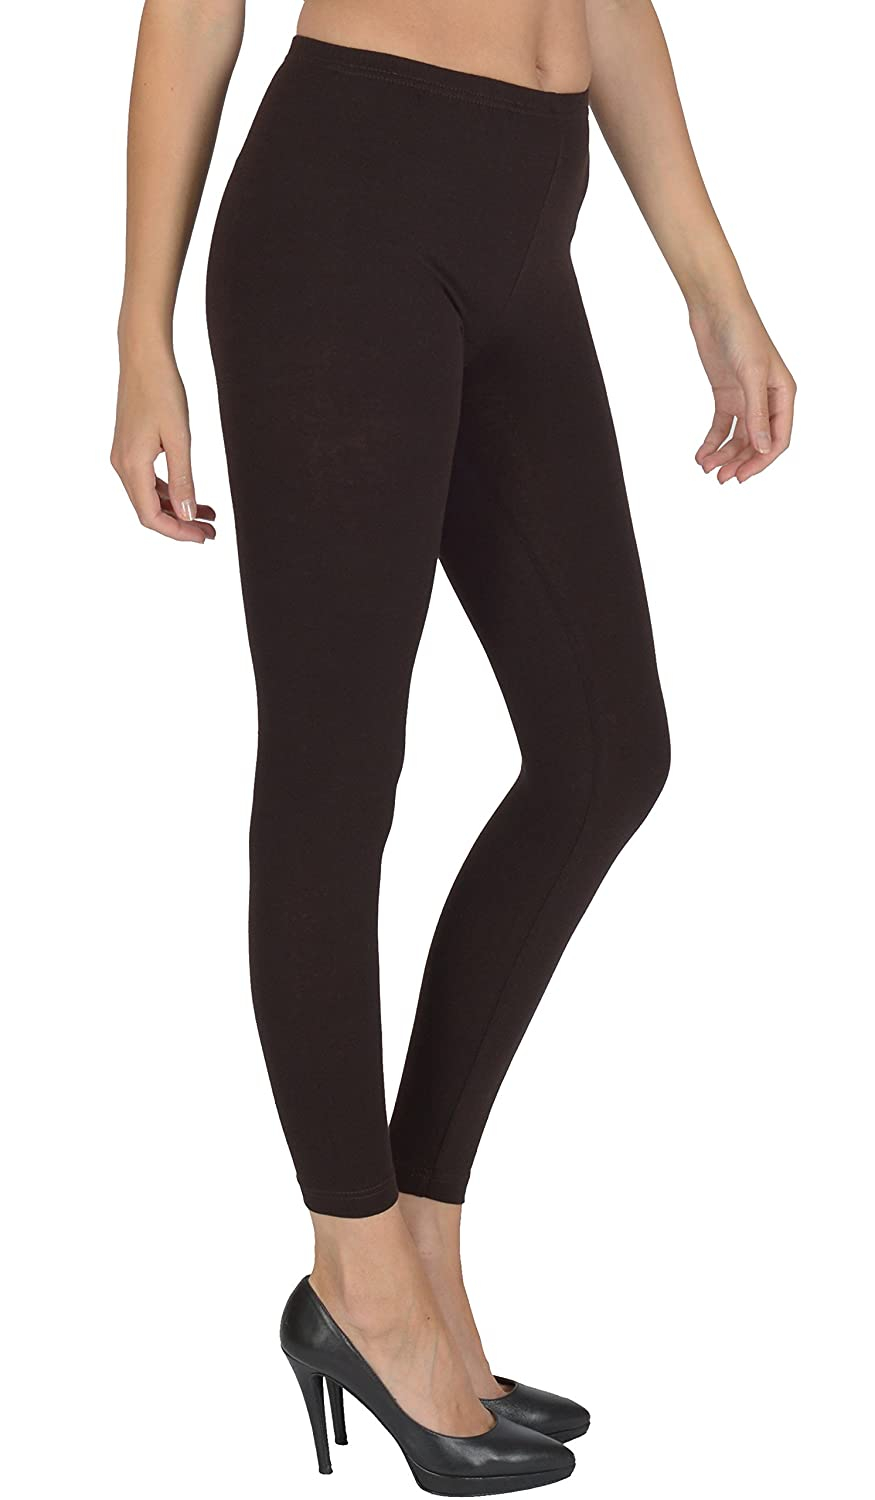 Women's Full Length Leggings By Today Is Her ® Extra Comfort Range, Plus Sizes A01-Parent